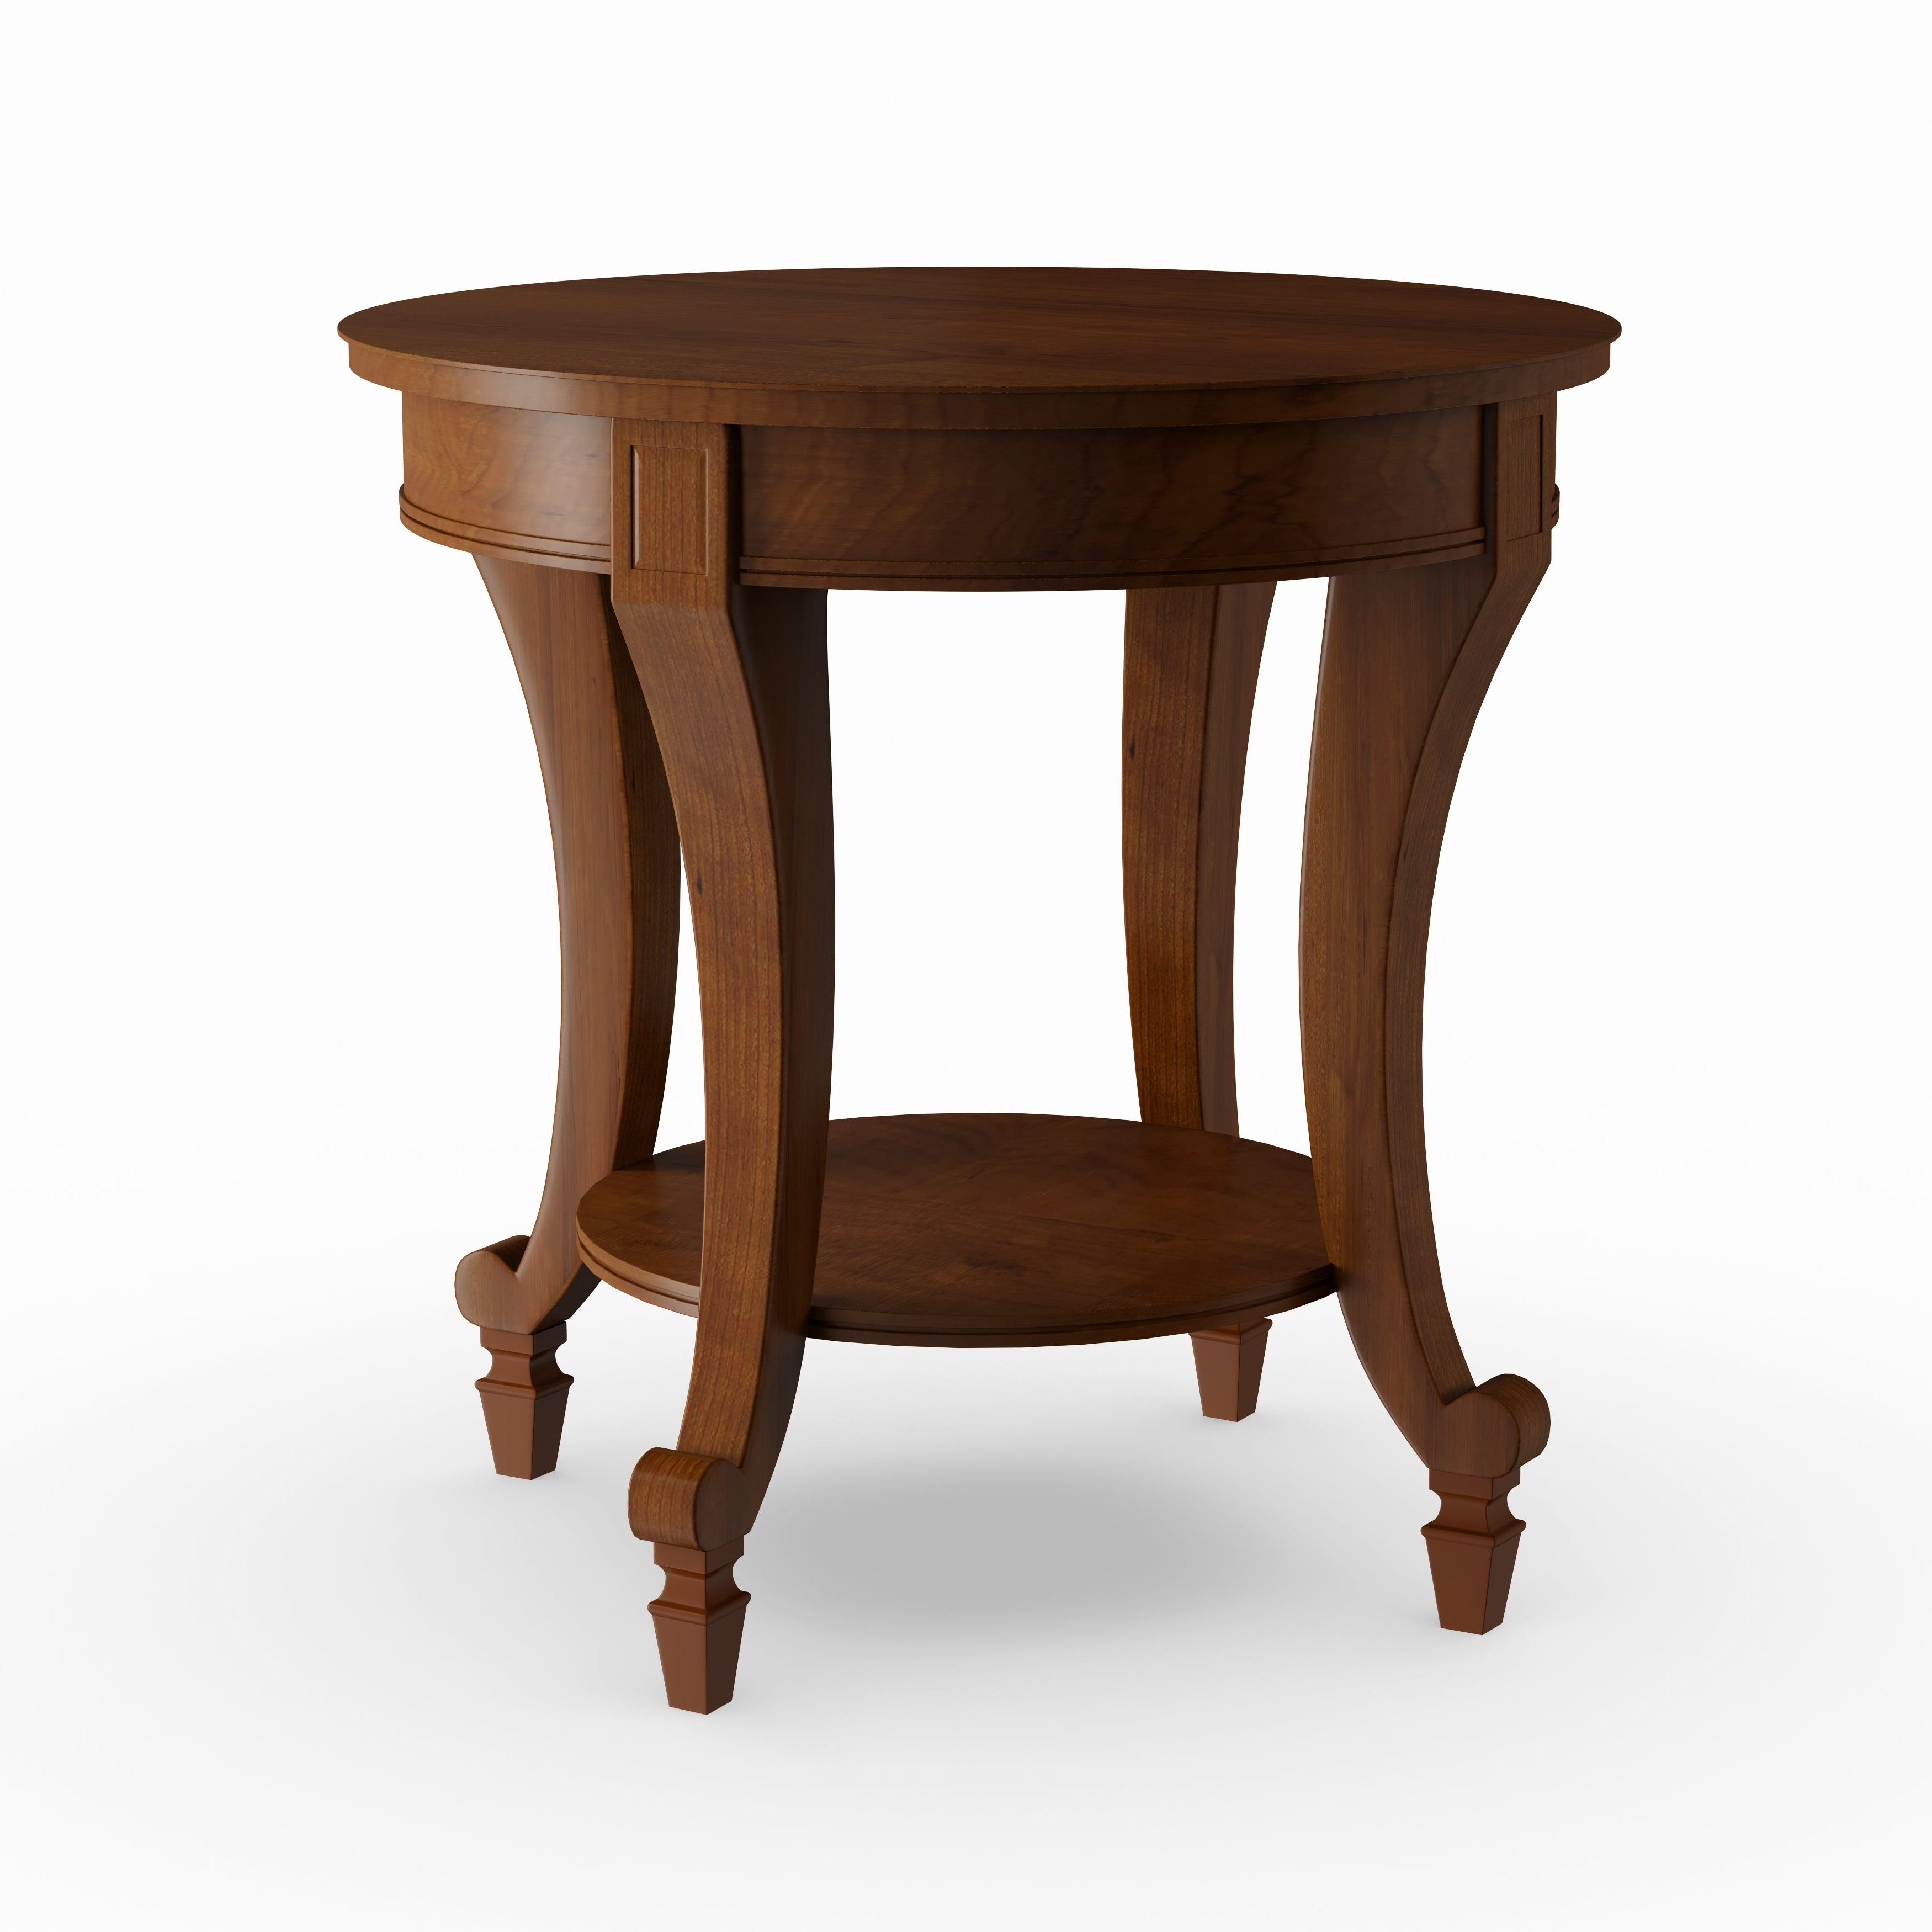 Gracewood Hollow Dones Traditional Cinnamon Round End Table Inside 2020 Gracewood Hollow Dones Traditional Cinnamon Round End Tables (View 2 of 20)